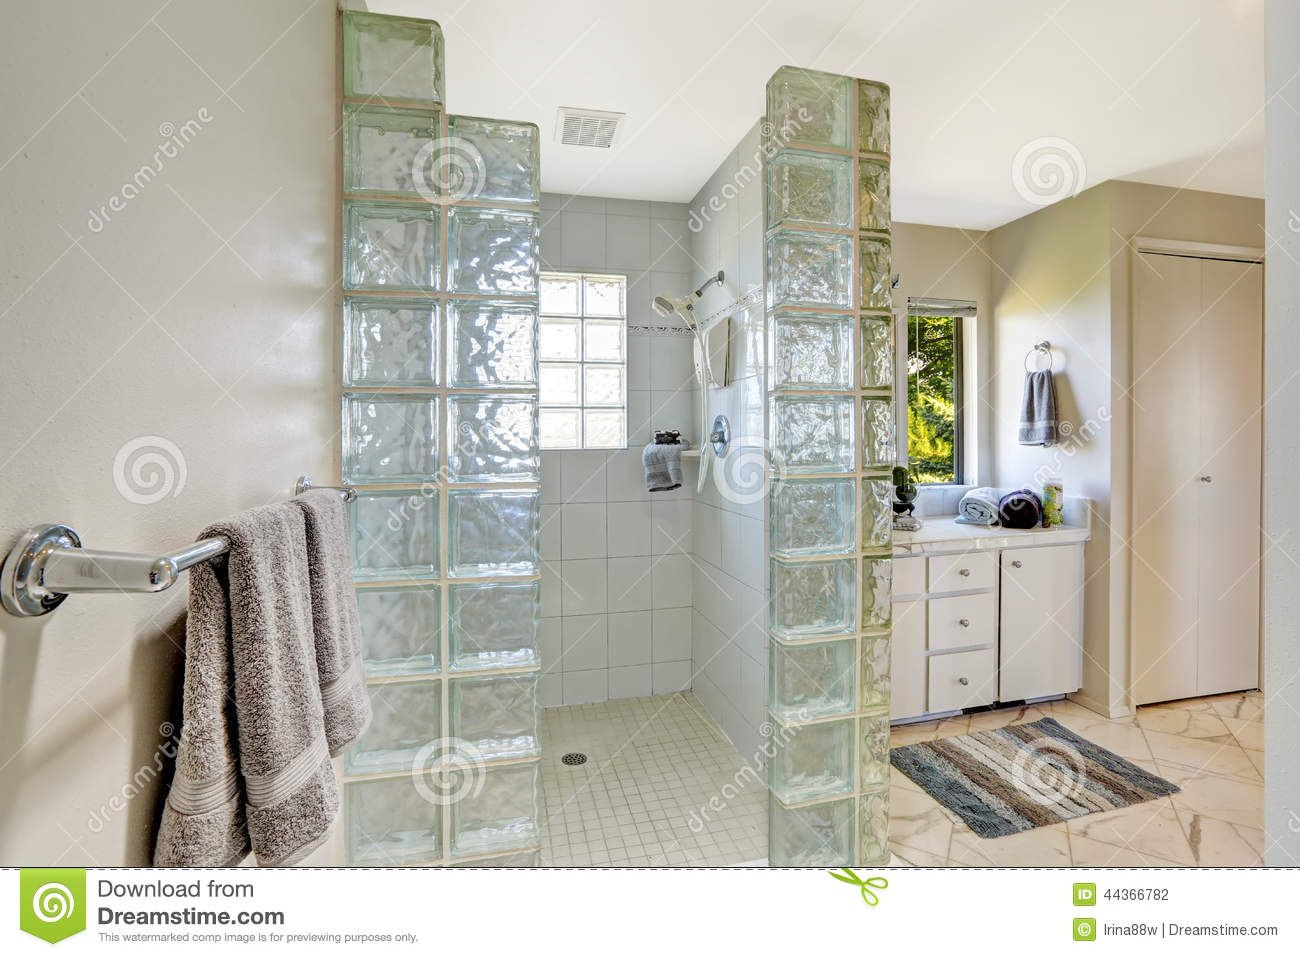 Shower with glass block trim stock photo image 44366782 for Mur en verre salle de bain